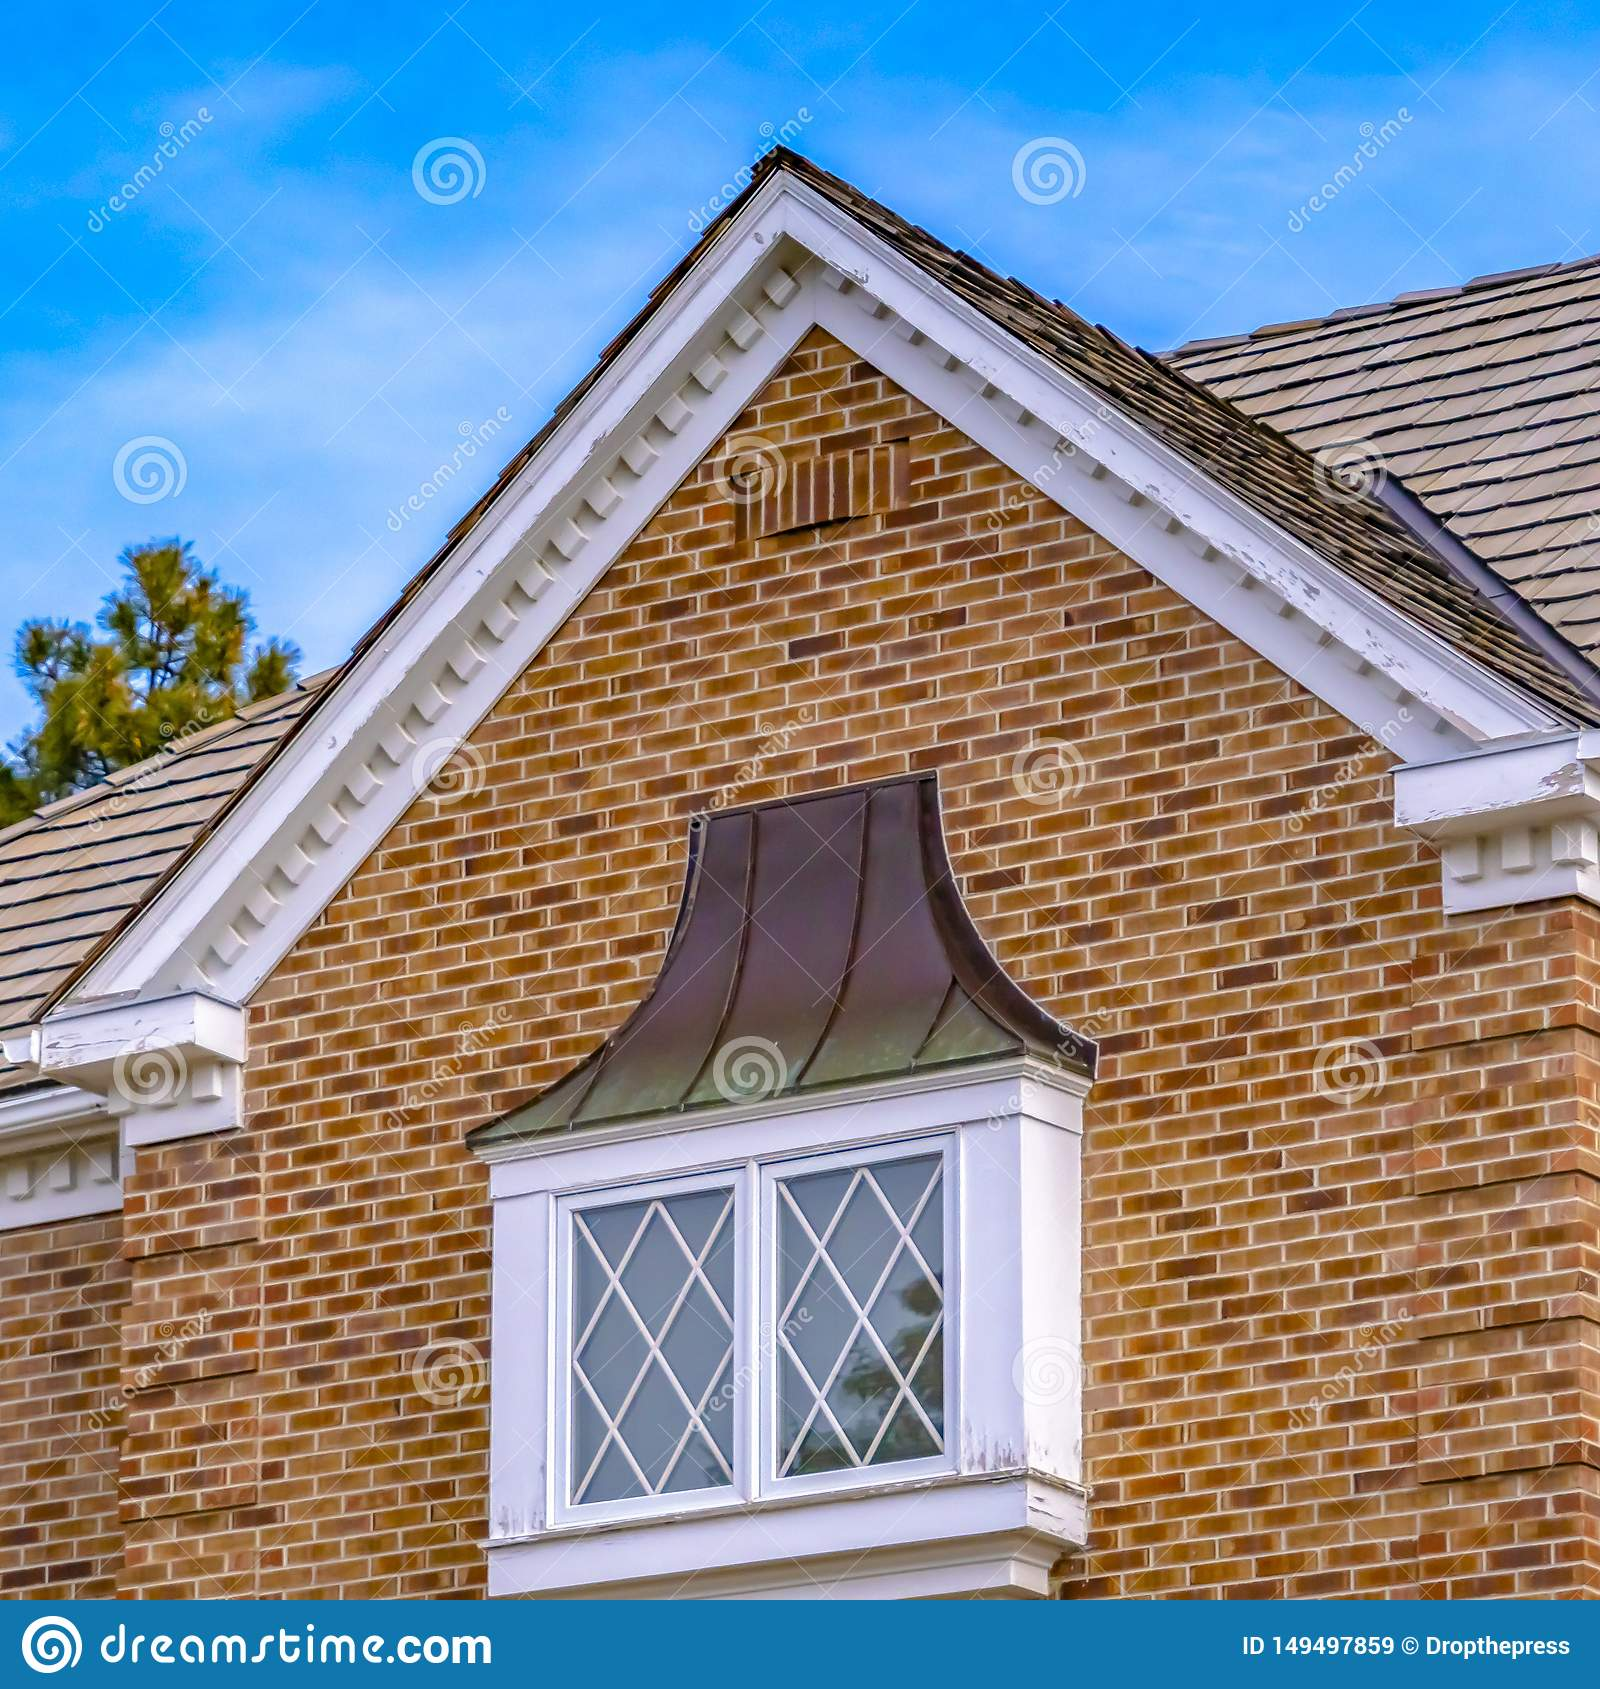 square frame luxurious exterior house lush trees serene sky background features classic brick wall windows white 149497859